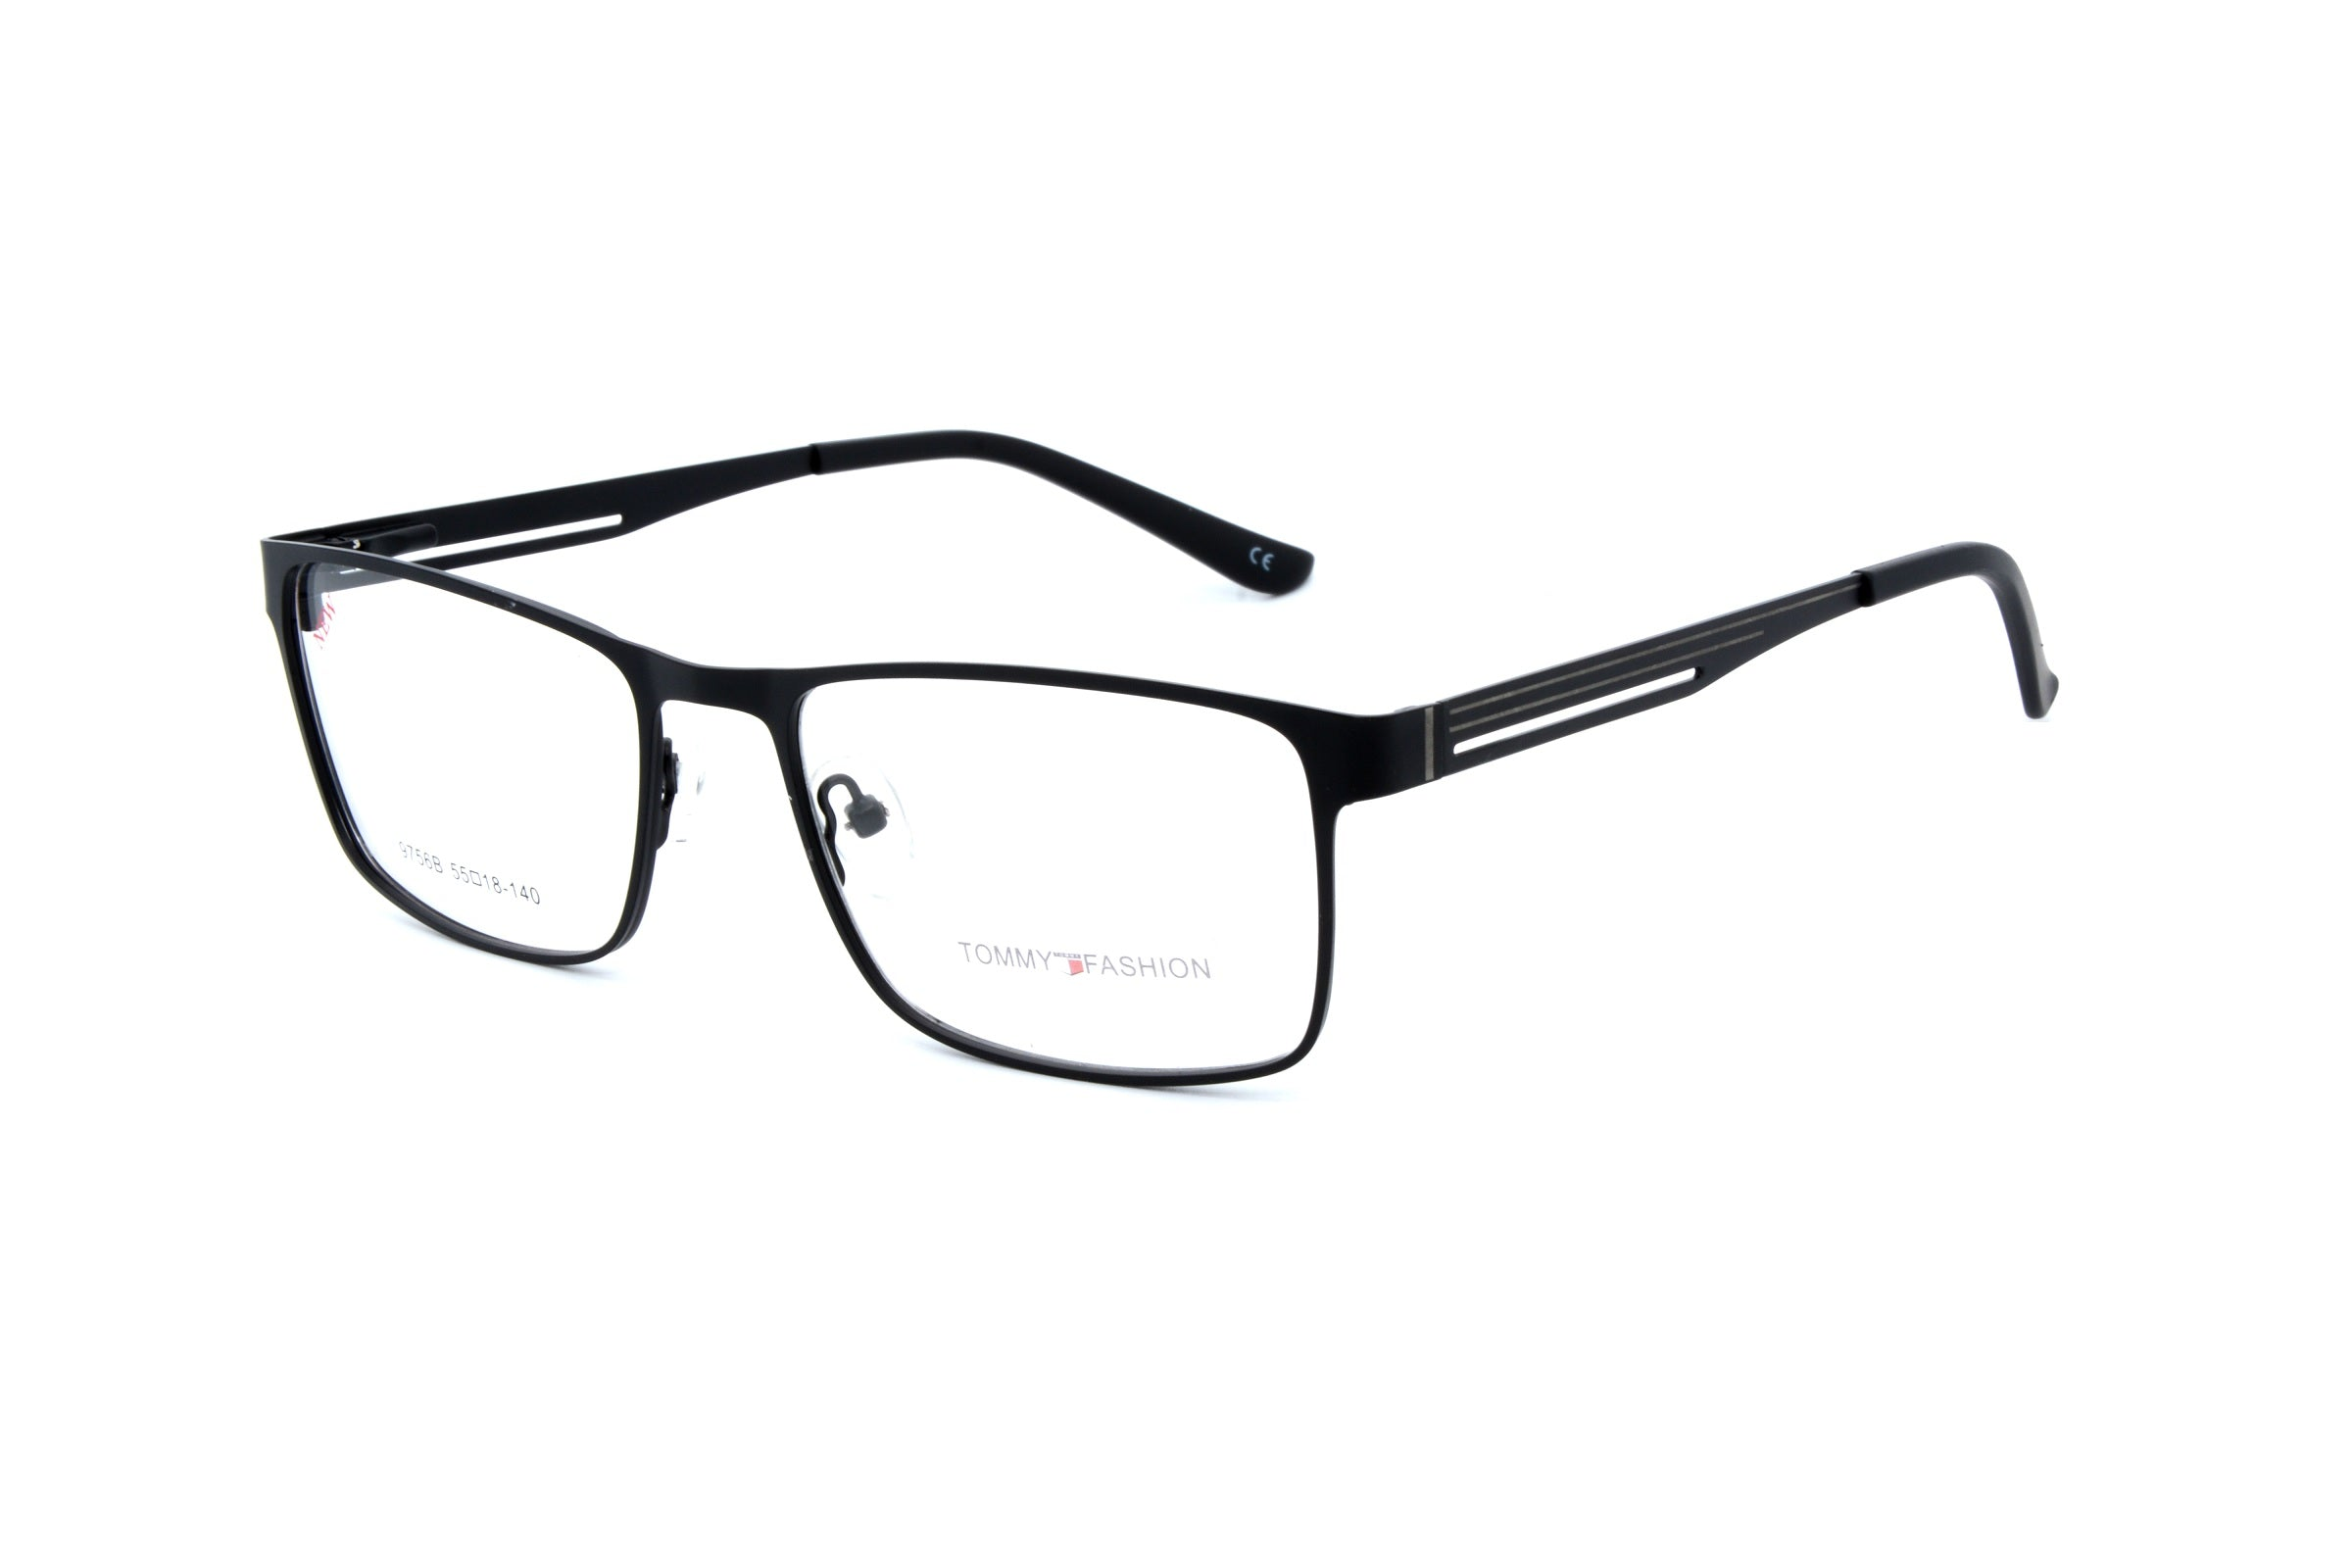 Tommy Fashion eyewear 9756B, C6 - Optics Trading